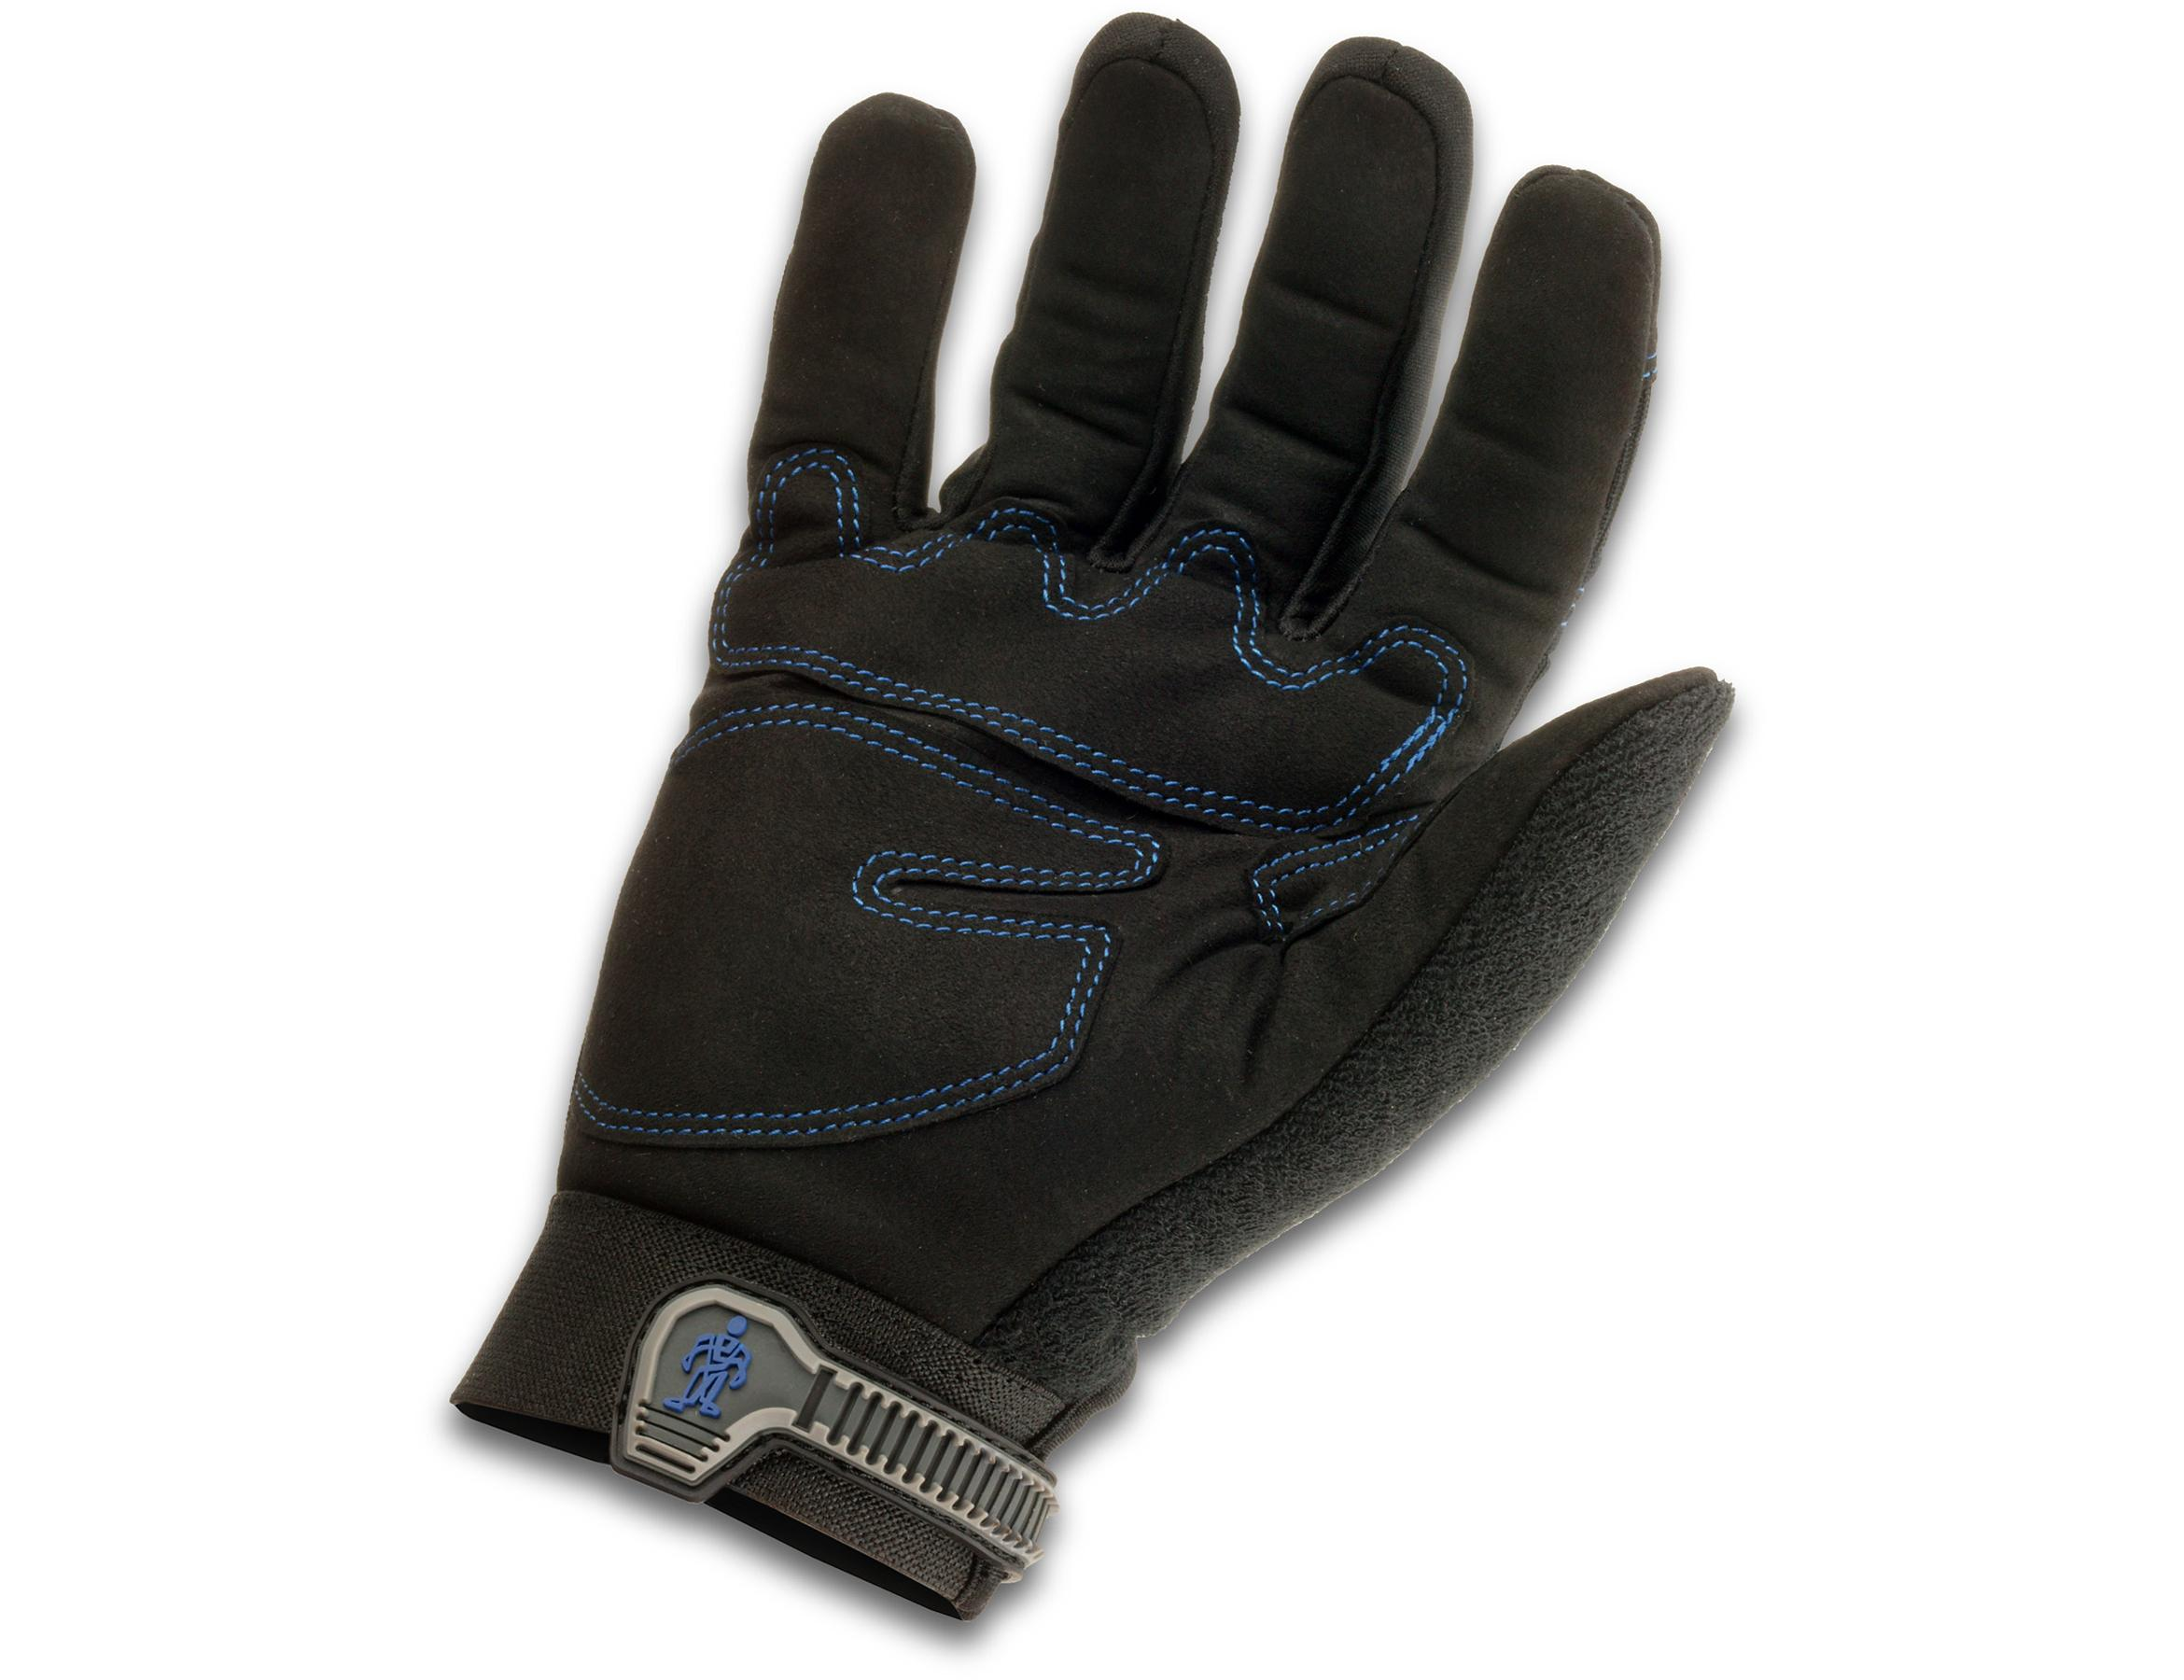 Thermal leather work gloves - From The Manufacturer